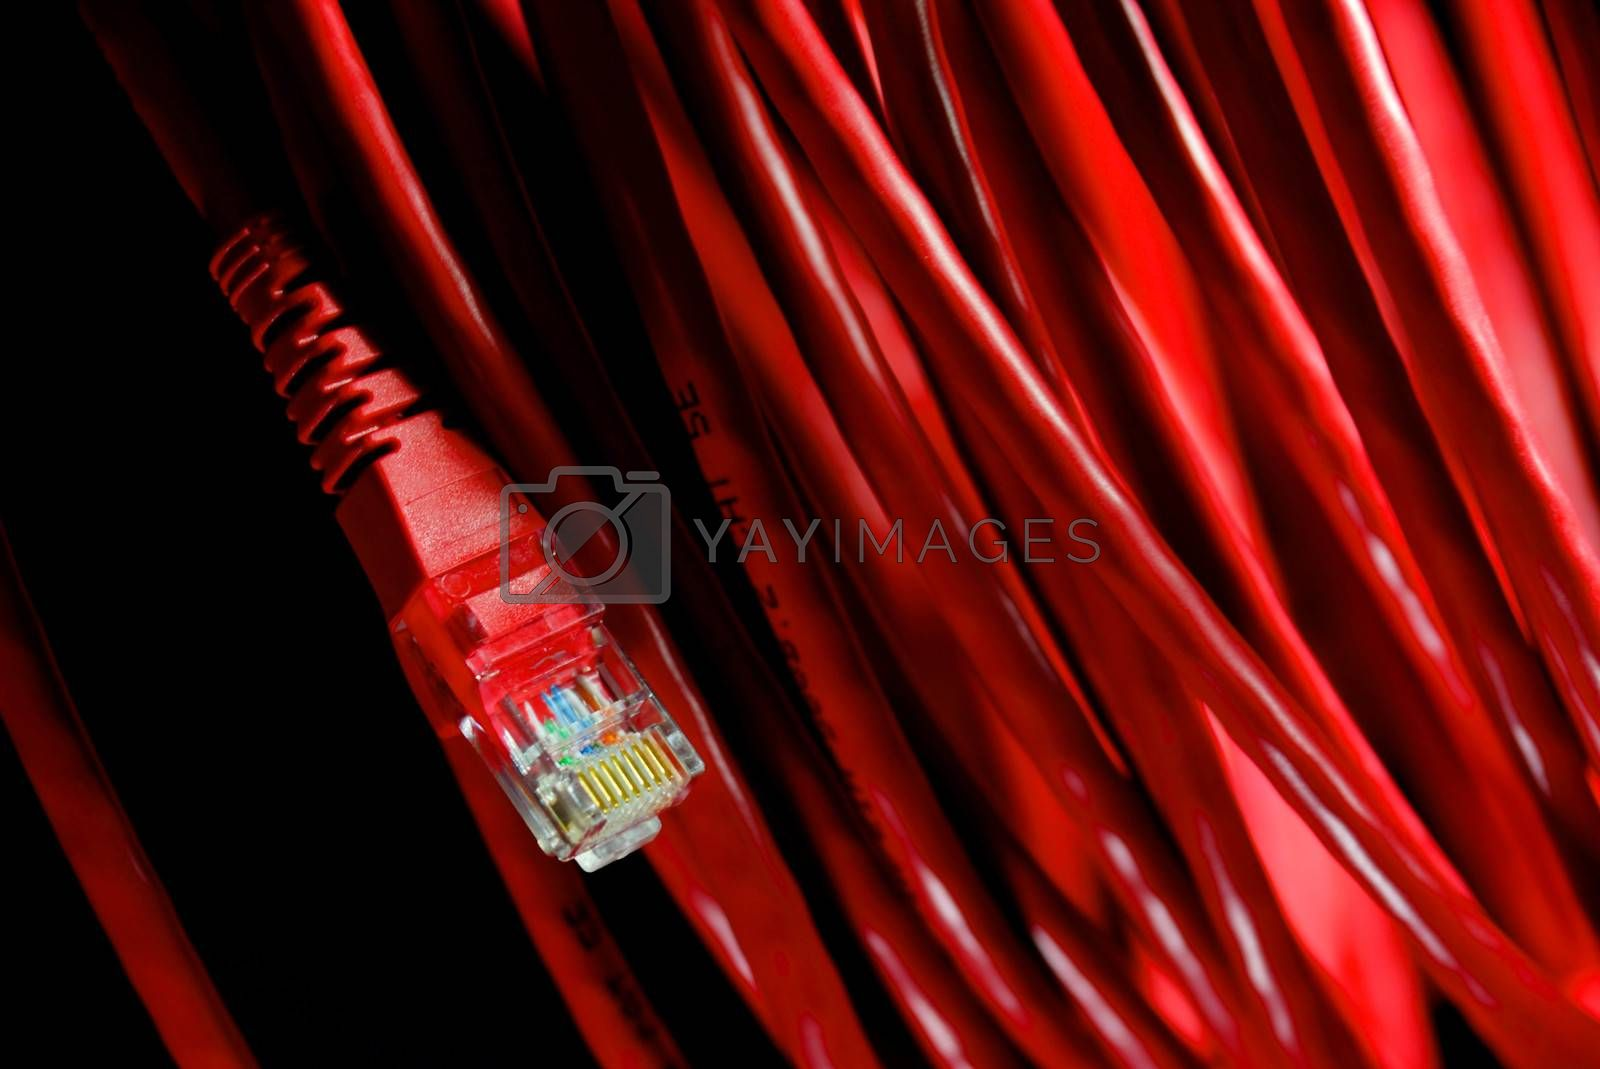 Royalty free image of cable and wire 29 by nattapatt